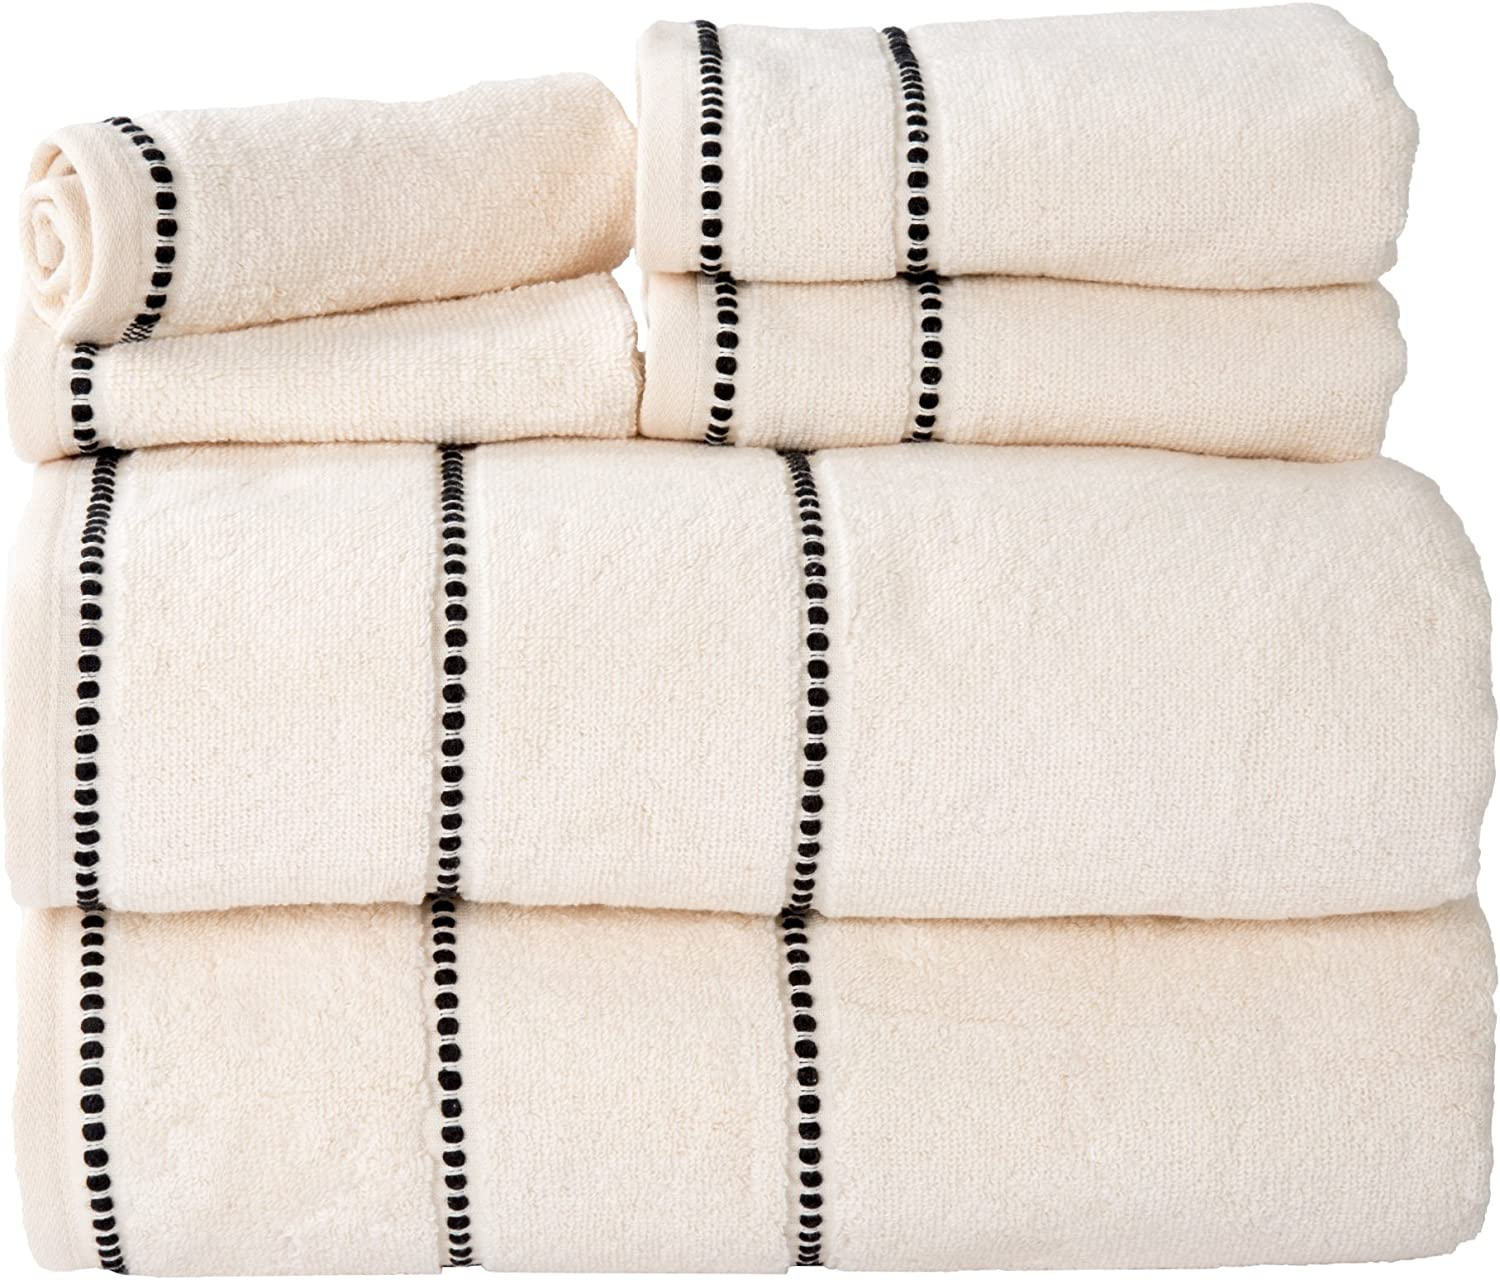 Luxury Cotton Towel Set- Quick Dry, Zero Twist and Soft 6 Piece Set With 2 Bath Towels, 2 Hand Towels and 2 Washcloths By Lavish Home (Bone / Black